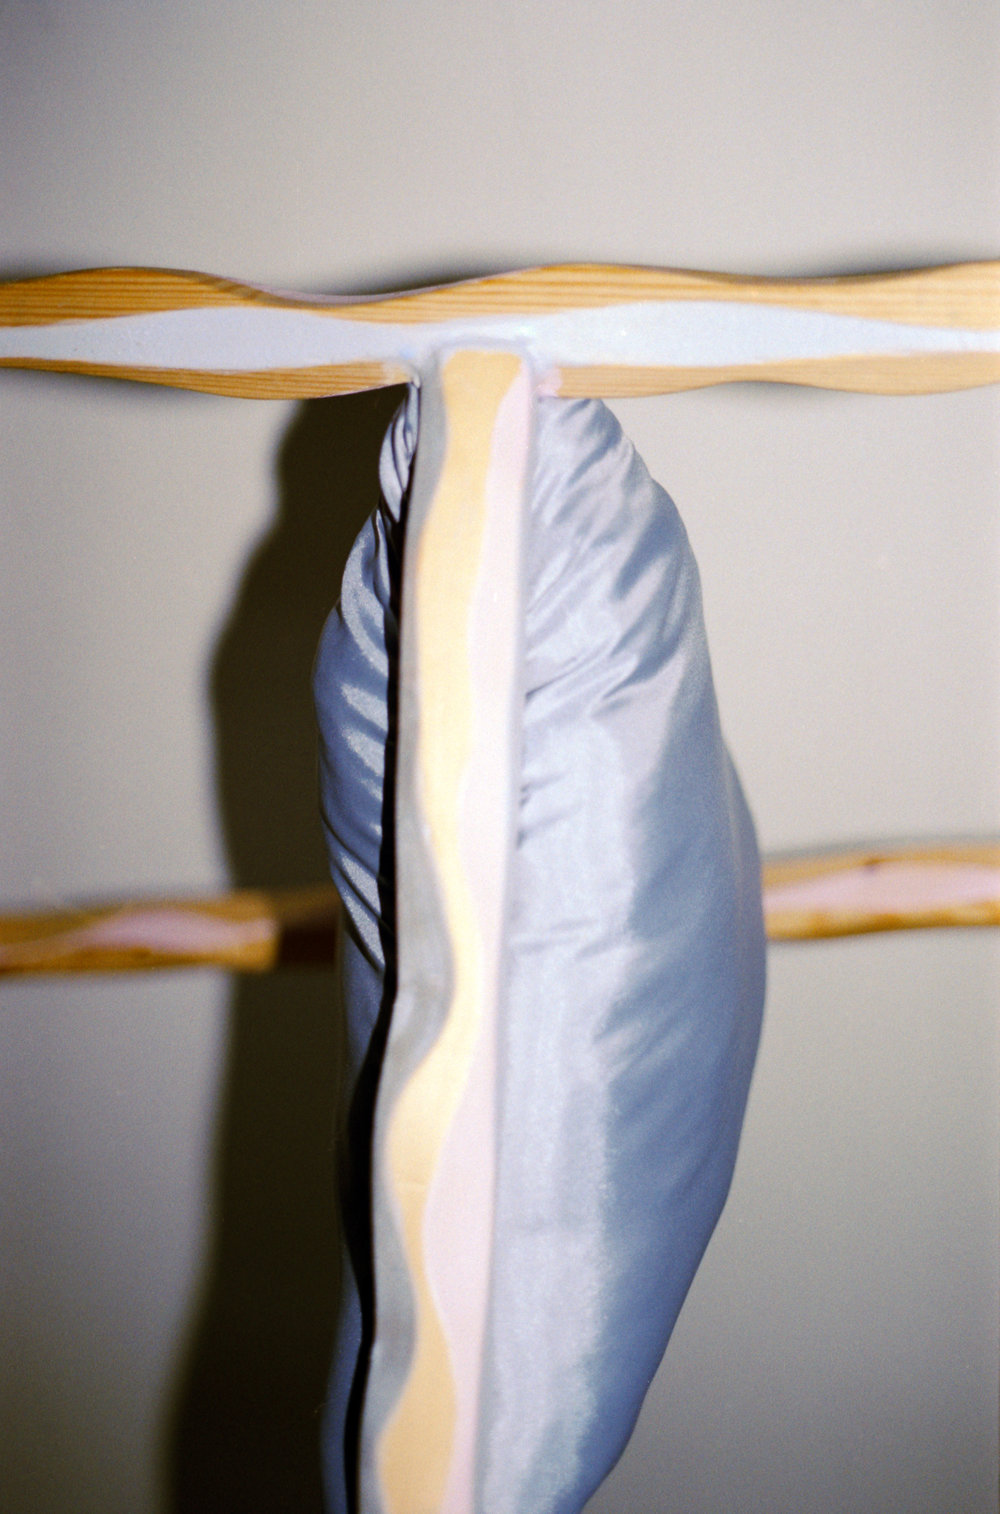 Bea Bonafini, Studio visit by dateagleart. Photography by Carla Benzing